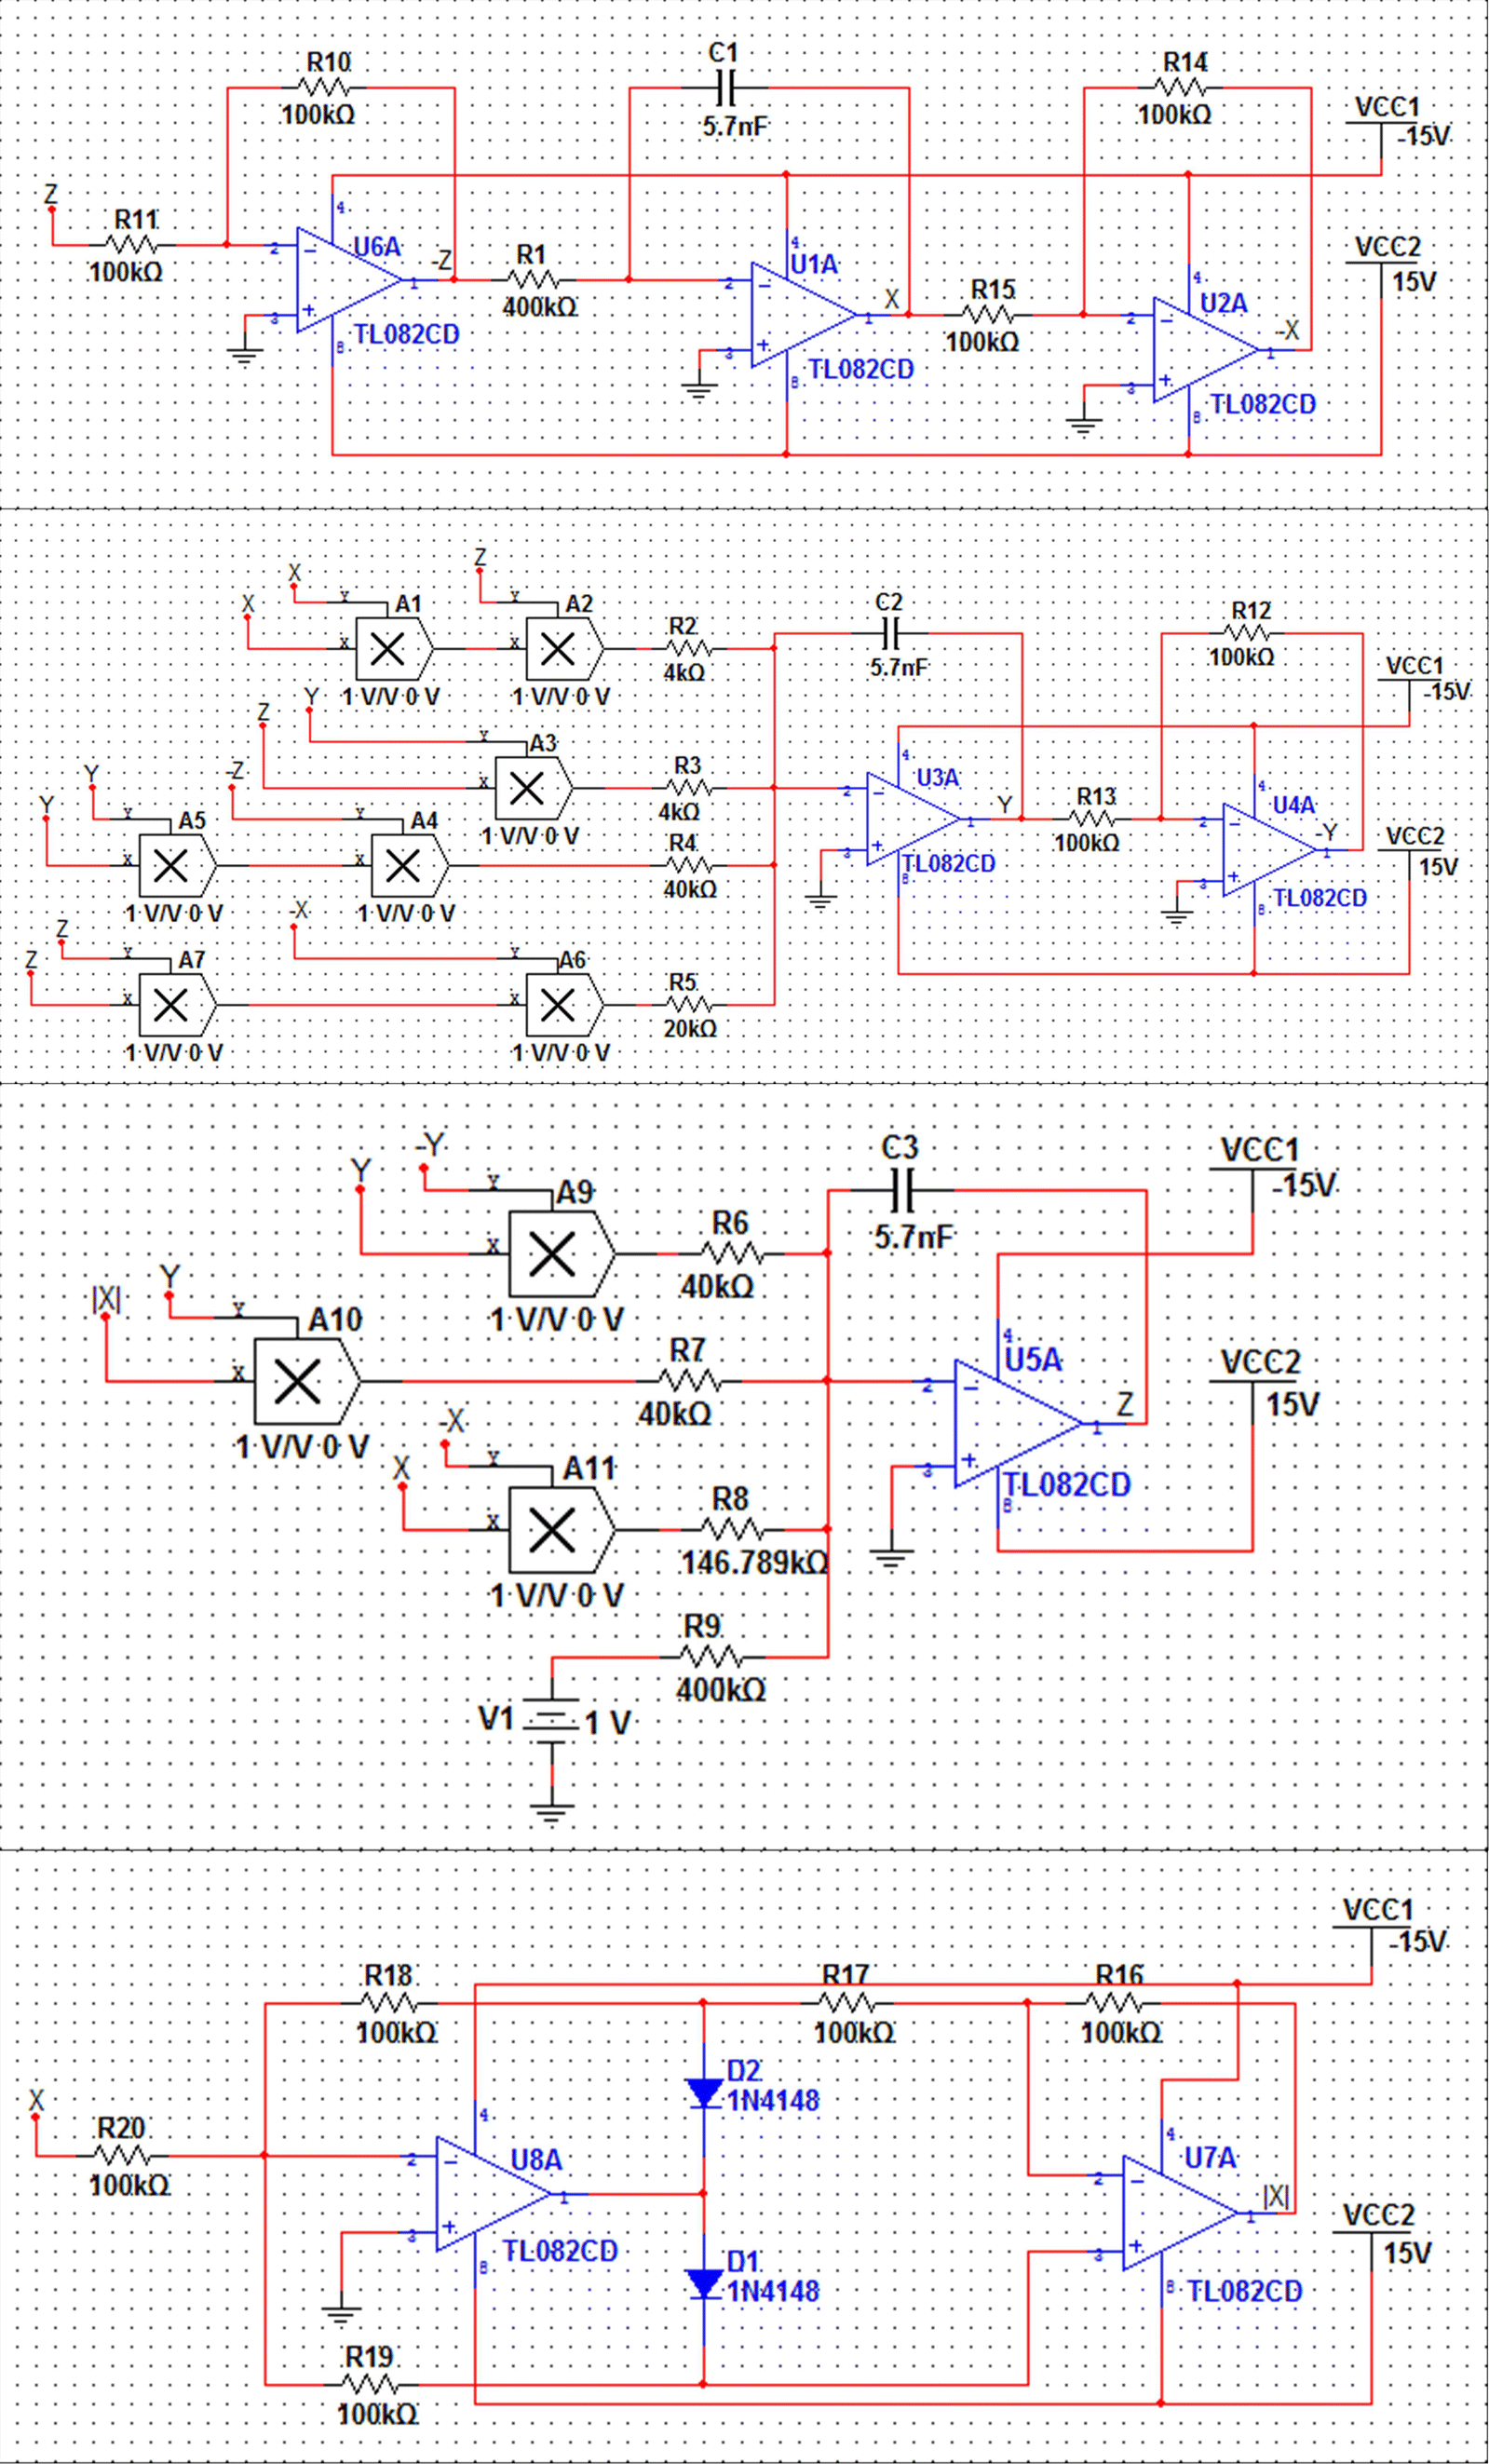 A Novel Chaotic System With Boomerang Shaped Equilibrium Its Relay Circuit In Multisim Fig 5 Schematic